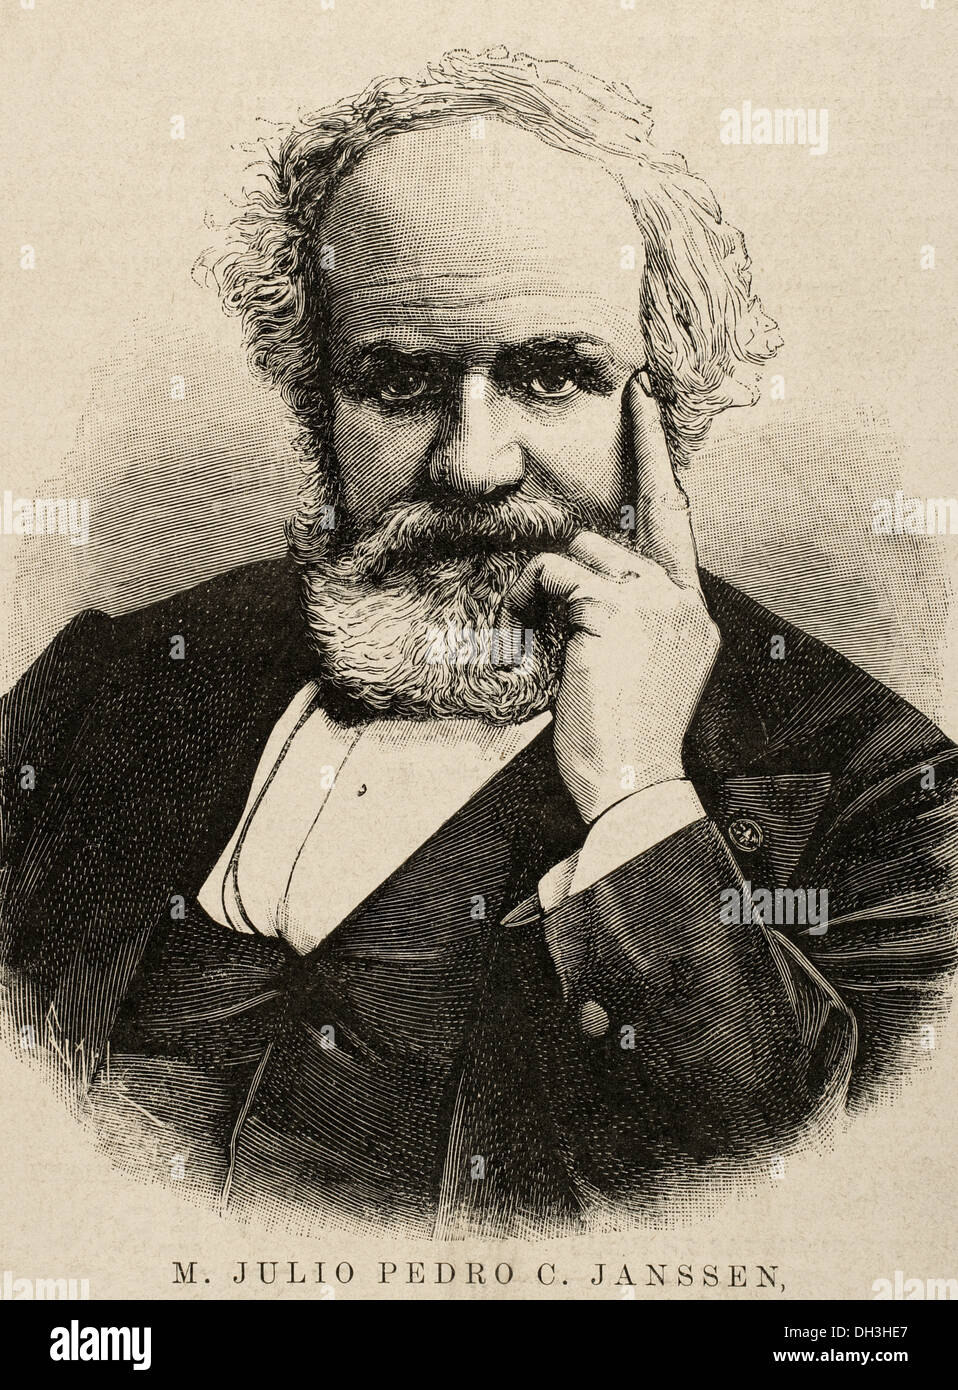 Pierre Janssen (1824-1907). French astronomer. Engraving by Capuz in The Spanish and American Illustration, 1892. - Stock Image